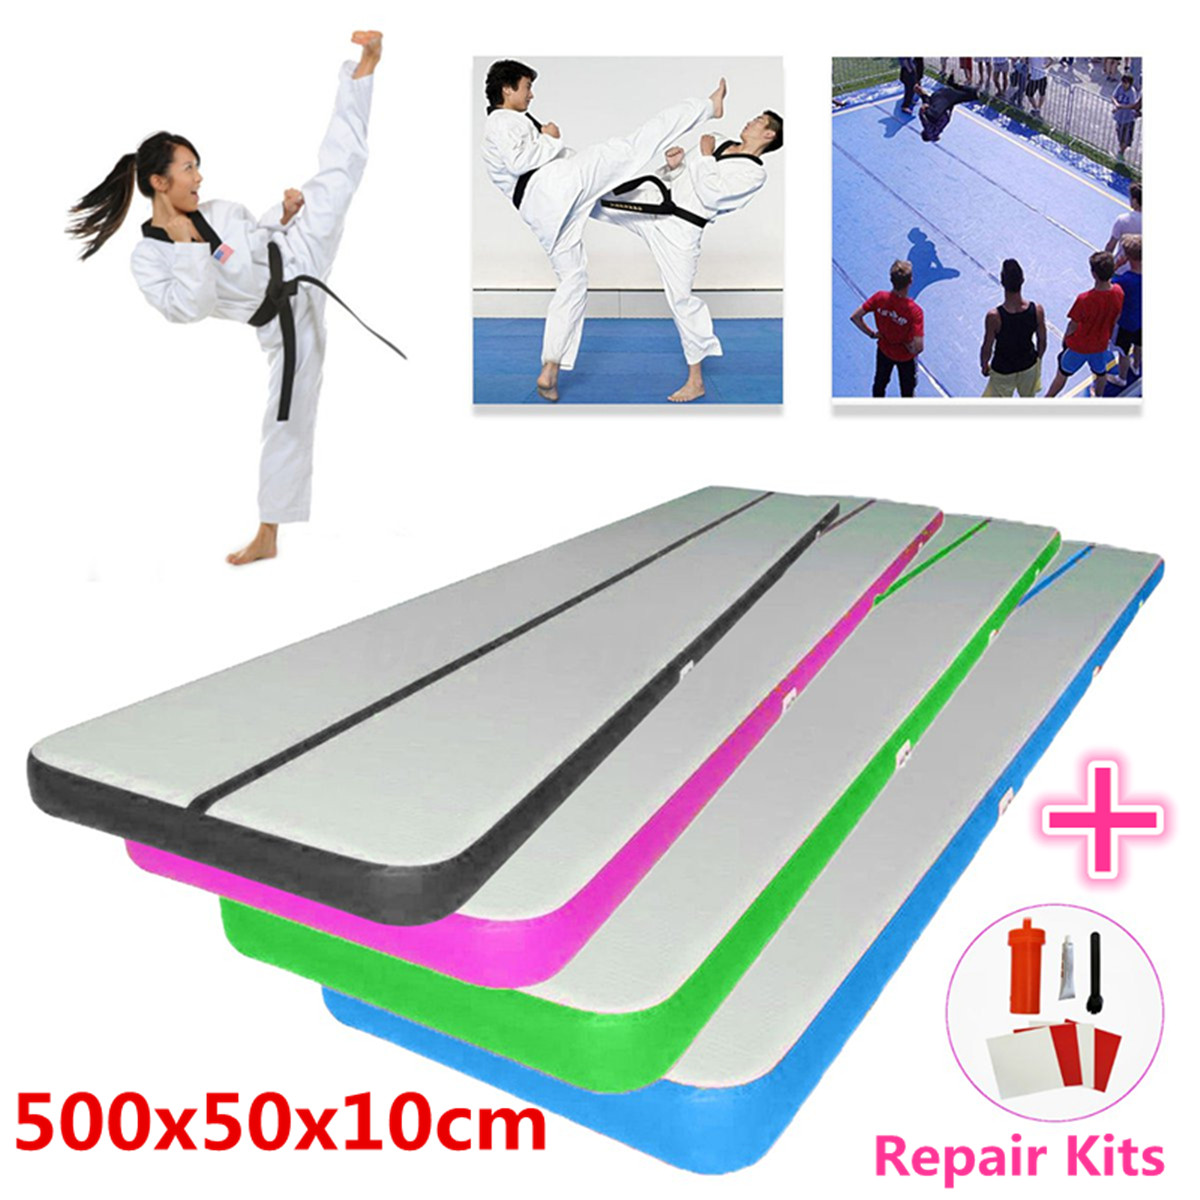 500x50x10cm/500x30x10 Airtrack Air Track Floor Home Inflatable Gymnastics Tumbling Mat GYM Inflatable Balance Equipment Exercise new arrival yoga mats 0 9 3m inflatable tumble track trampoline air track floor home gym gymnastics inflatable air tumbling mat